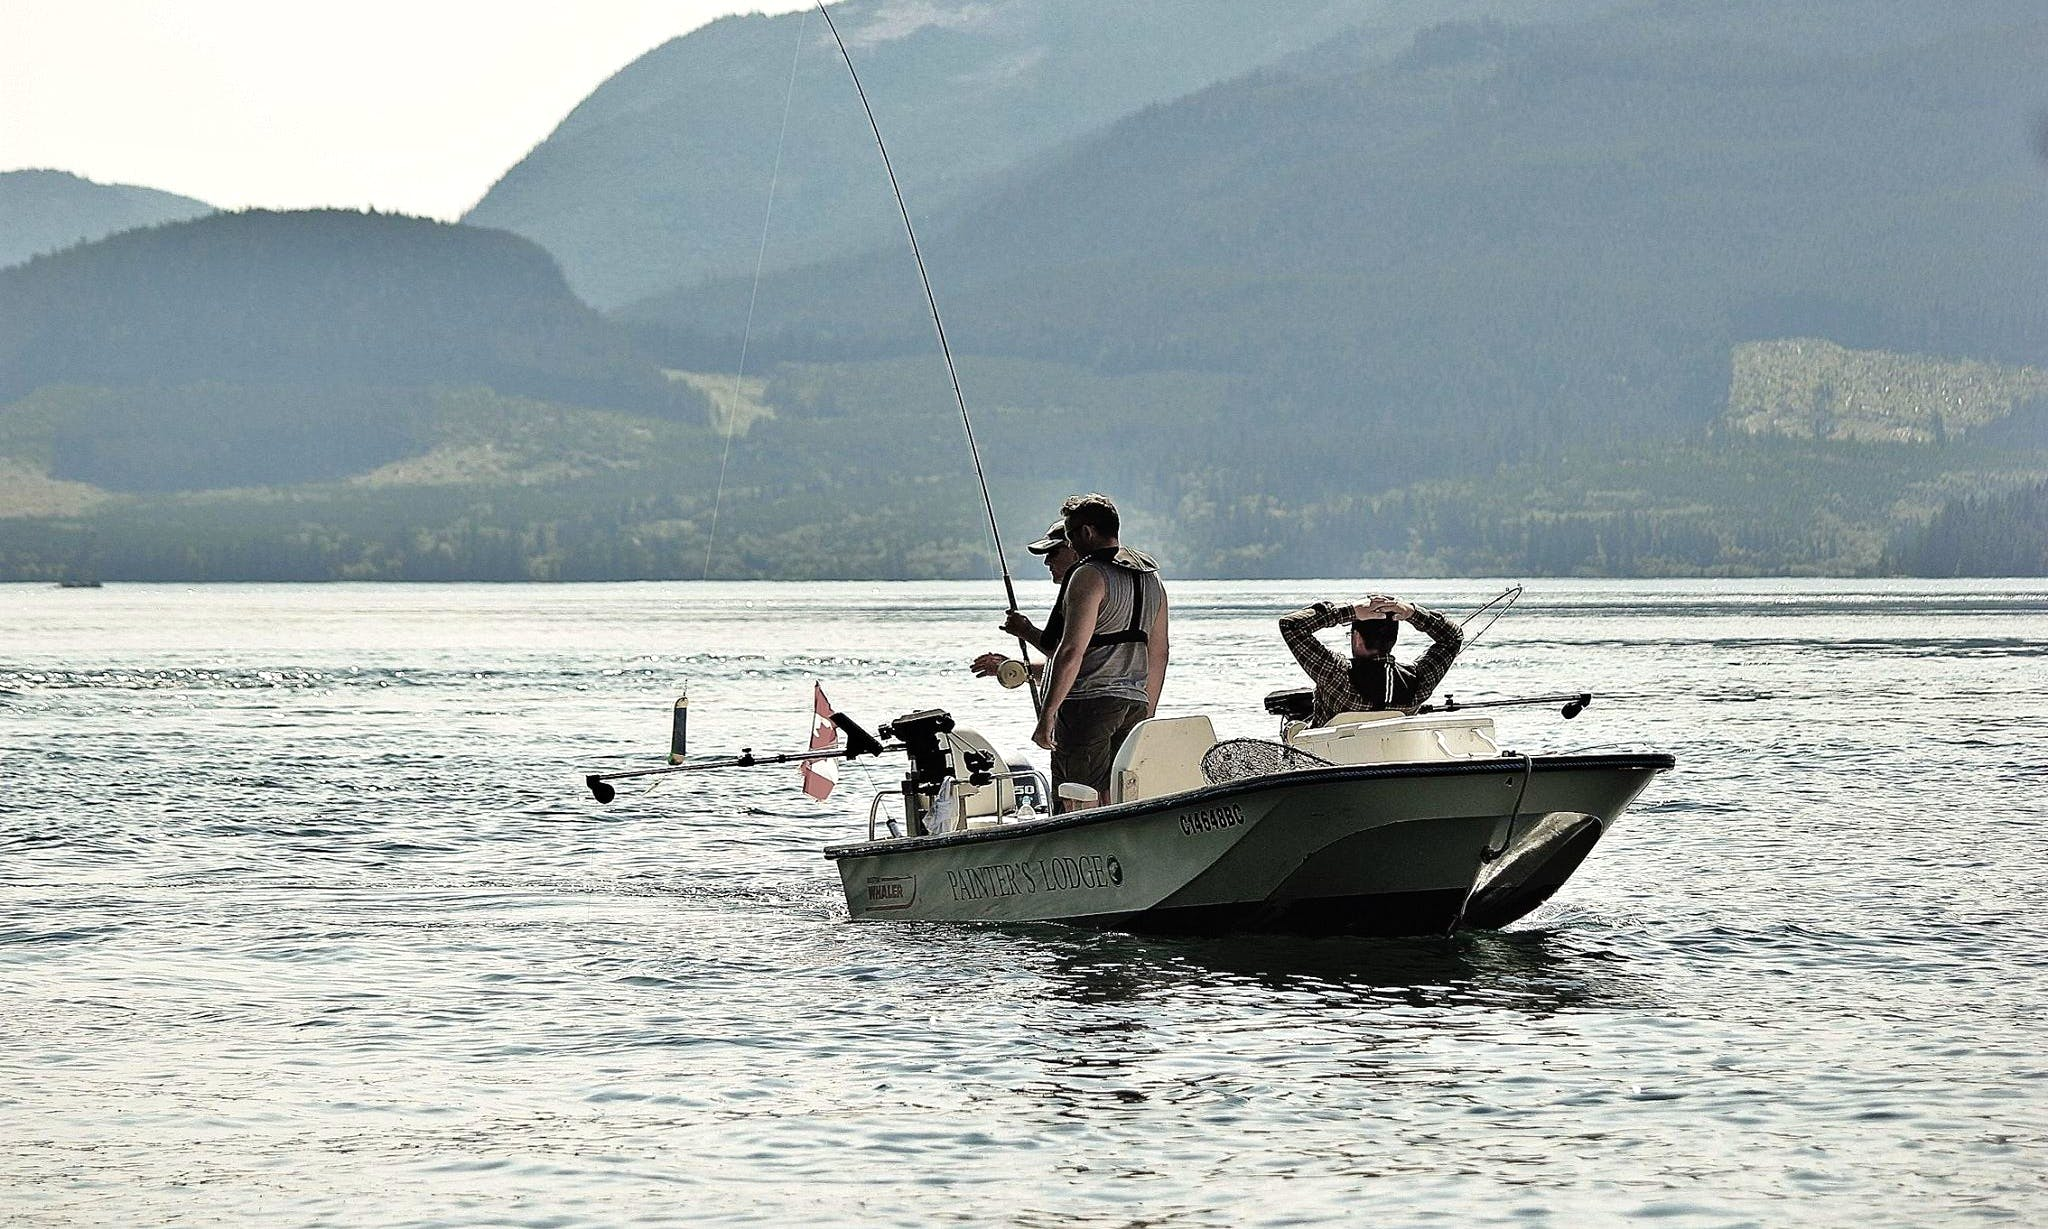 17' Boston Whaler Salmon Fishing Chater in Canada